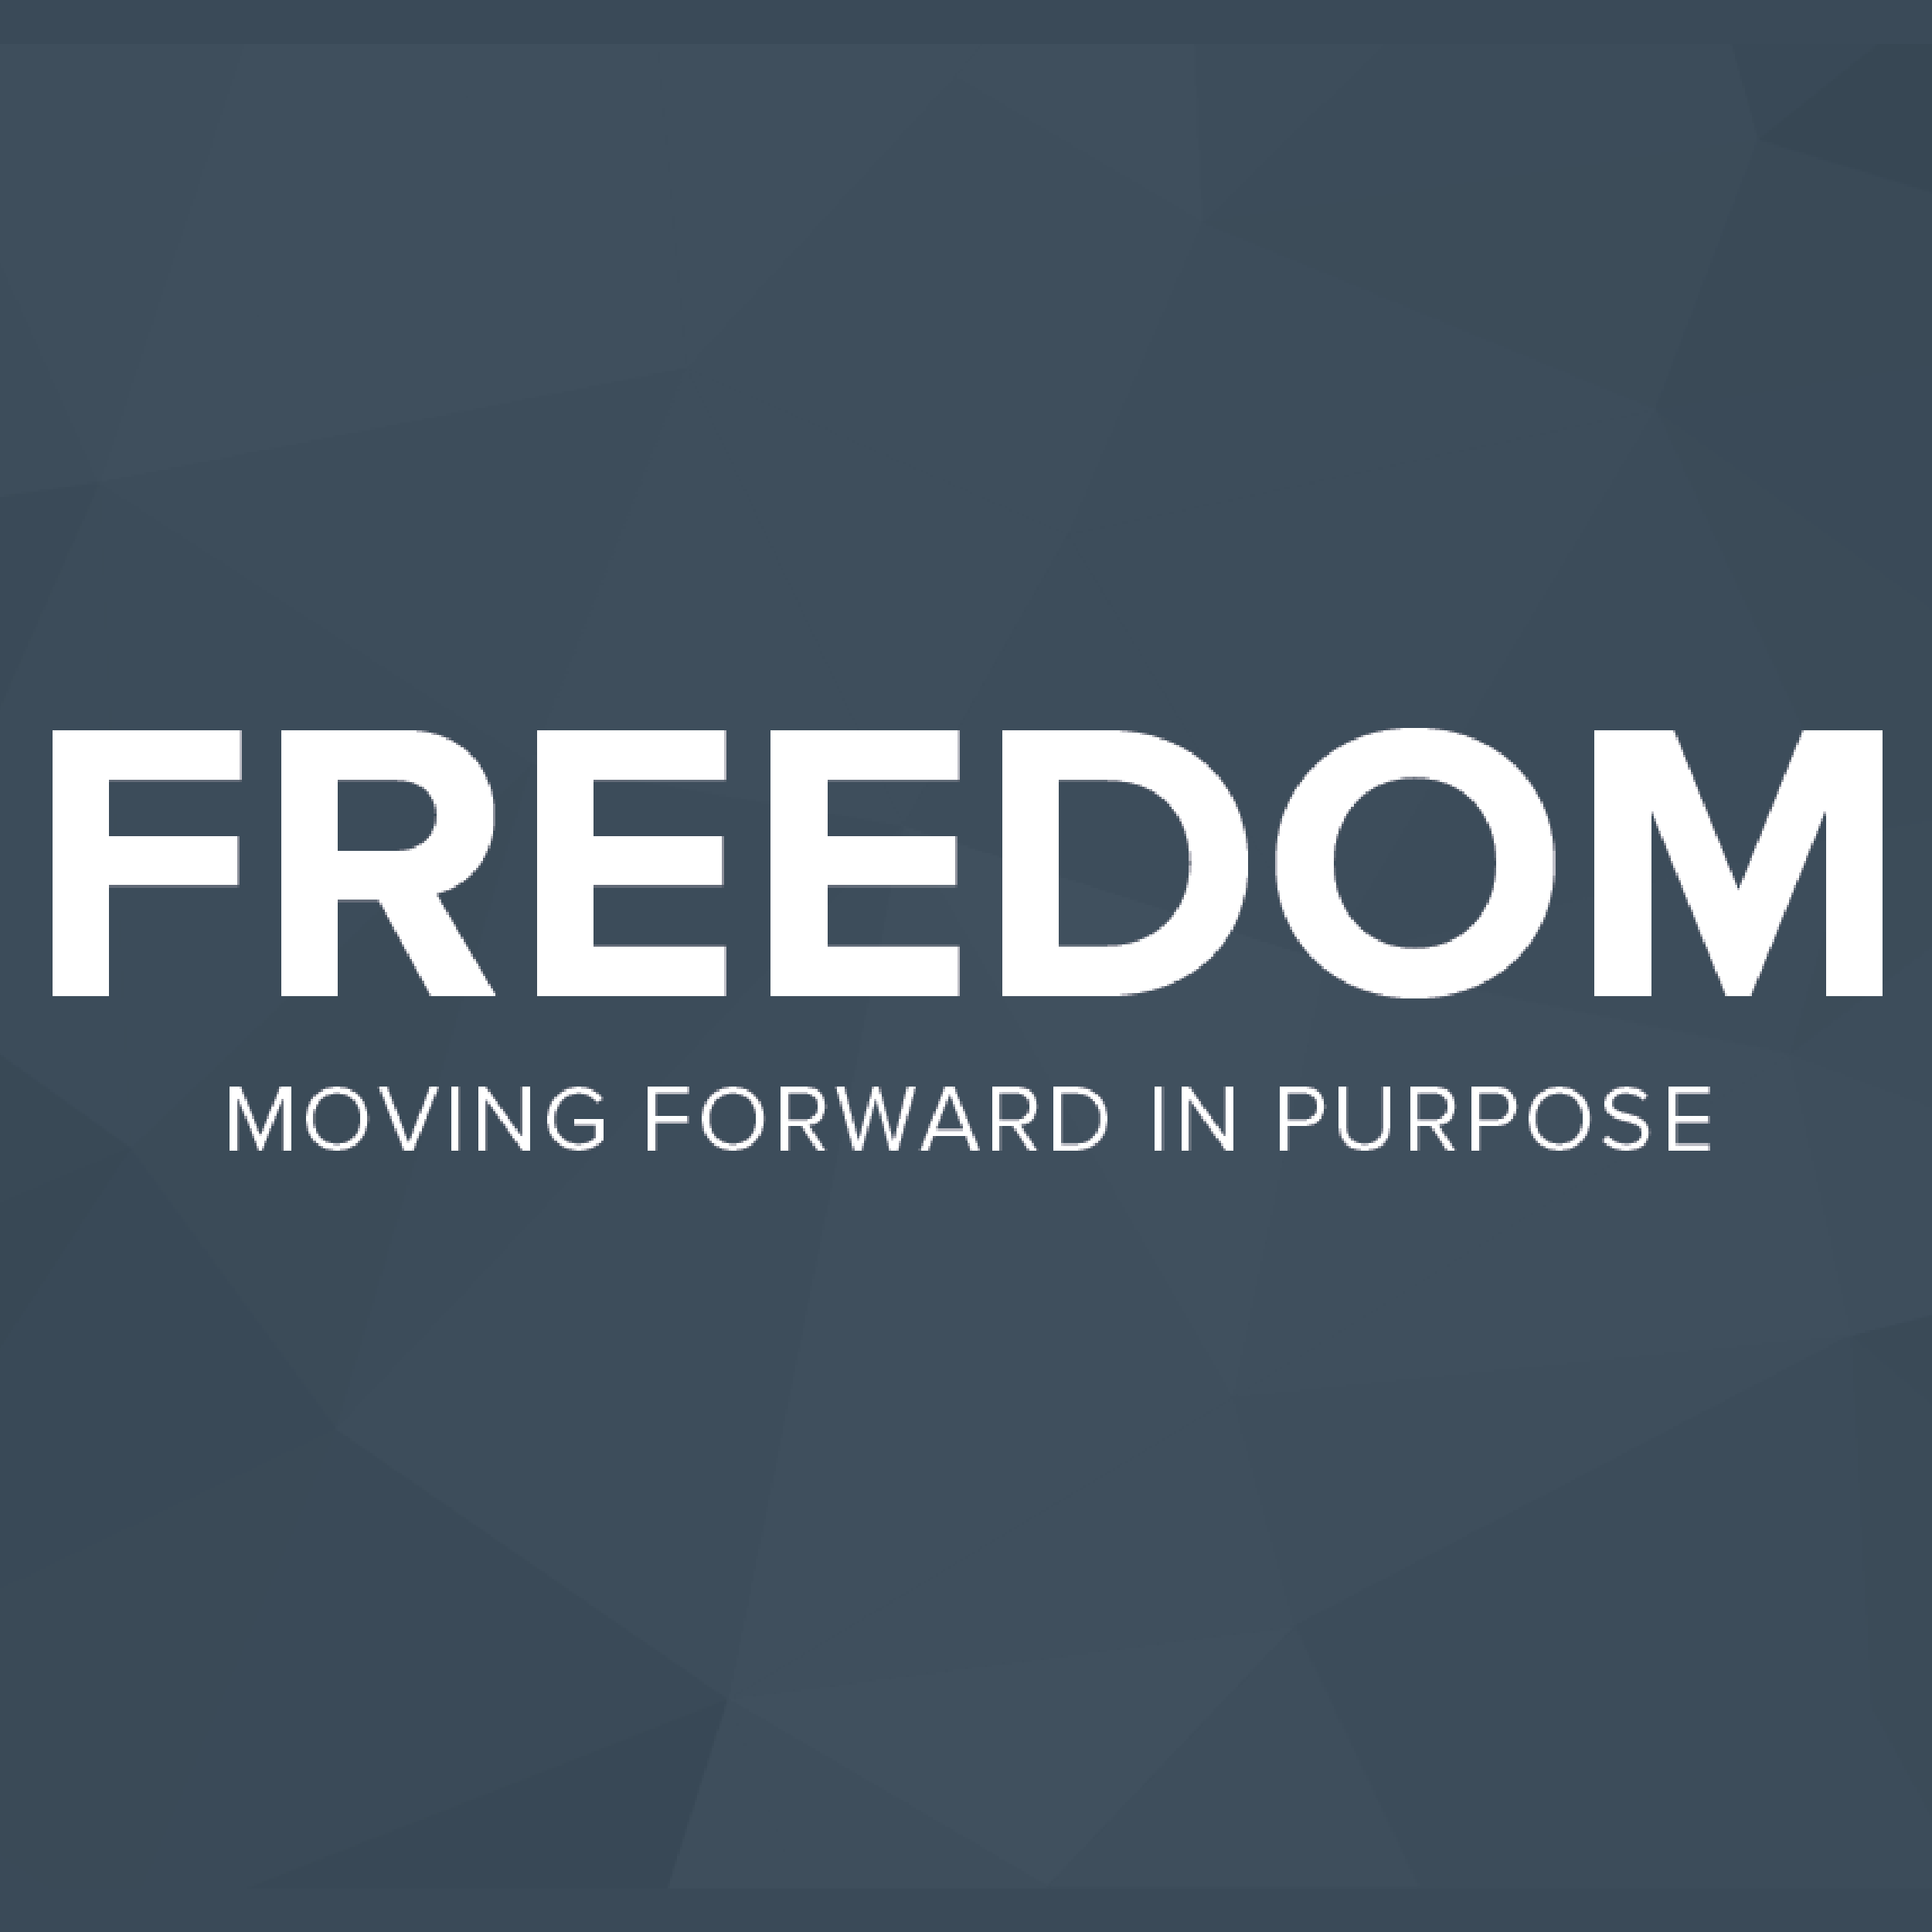 Freedom: Moving Forward in Purpose